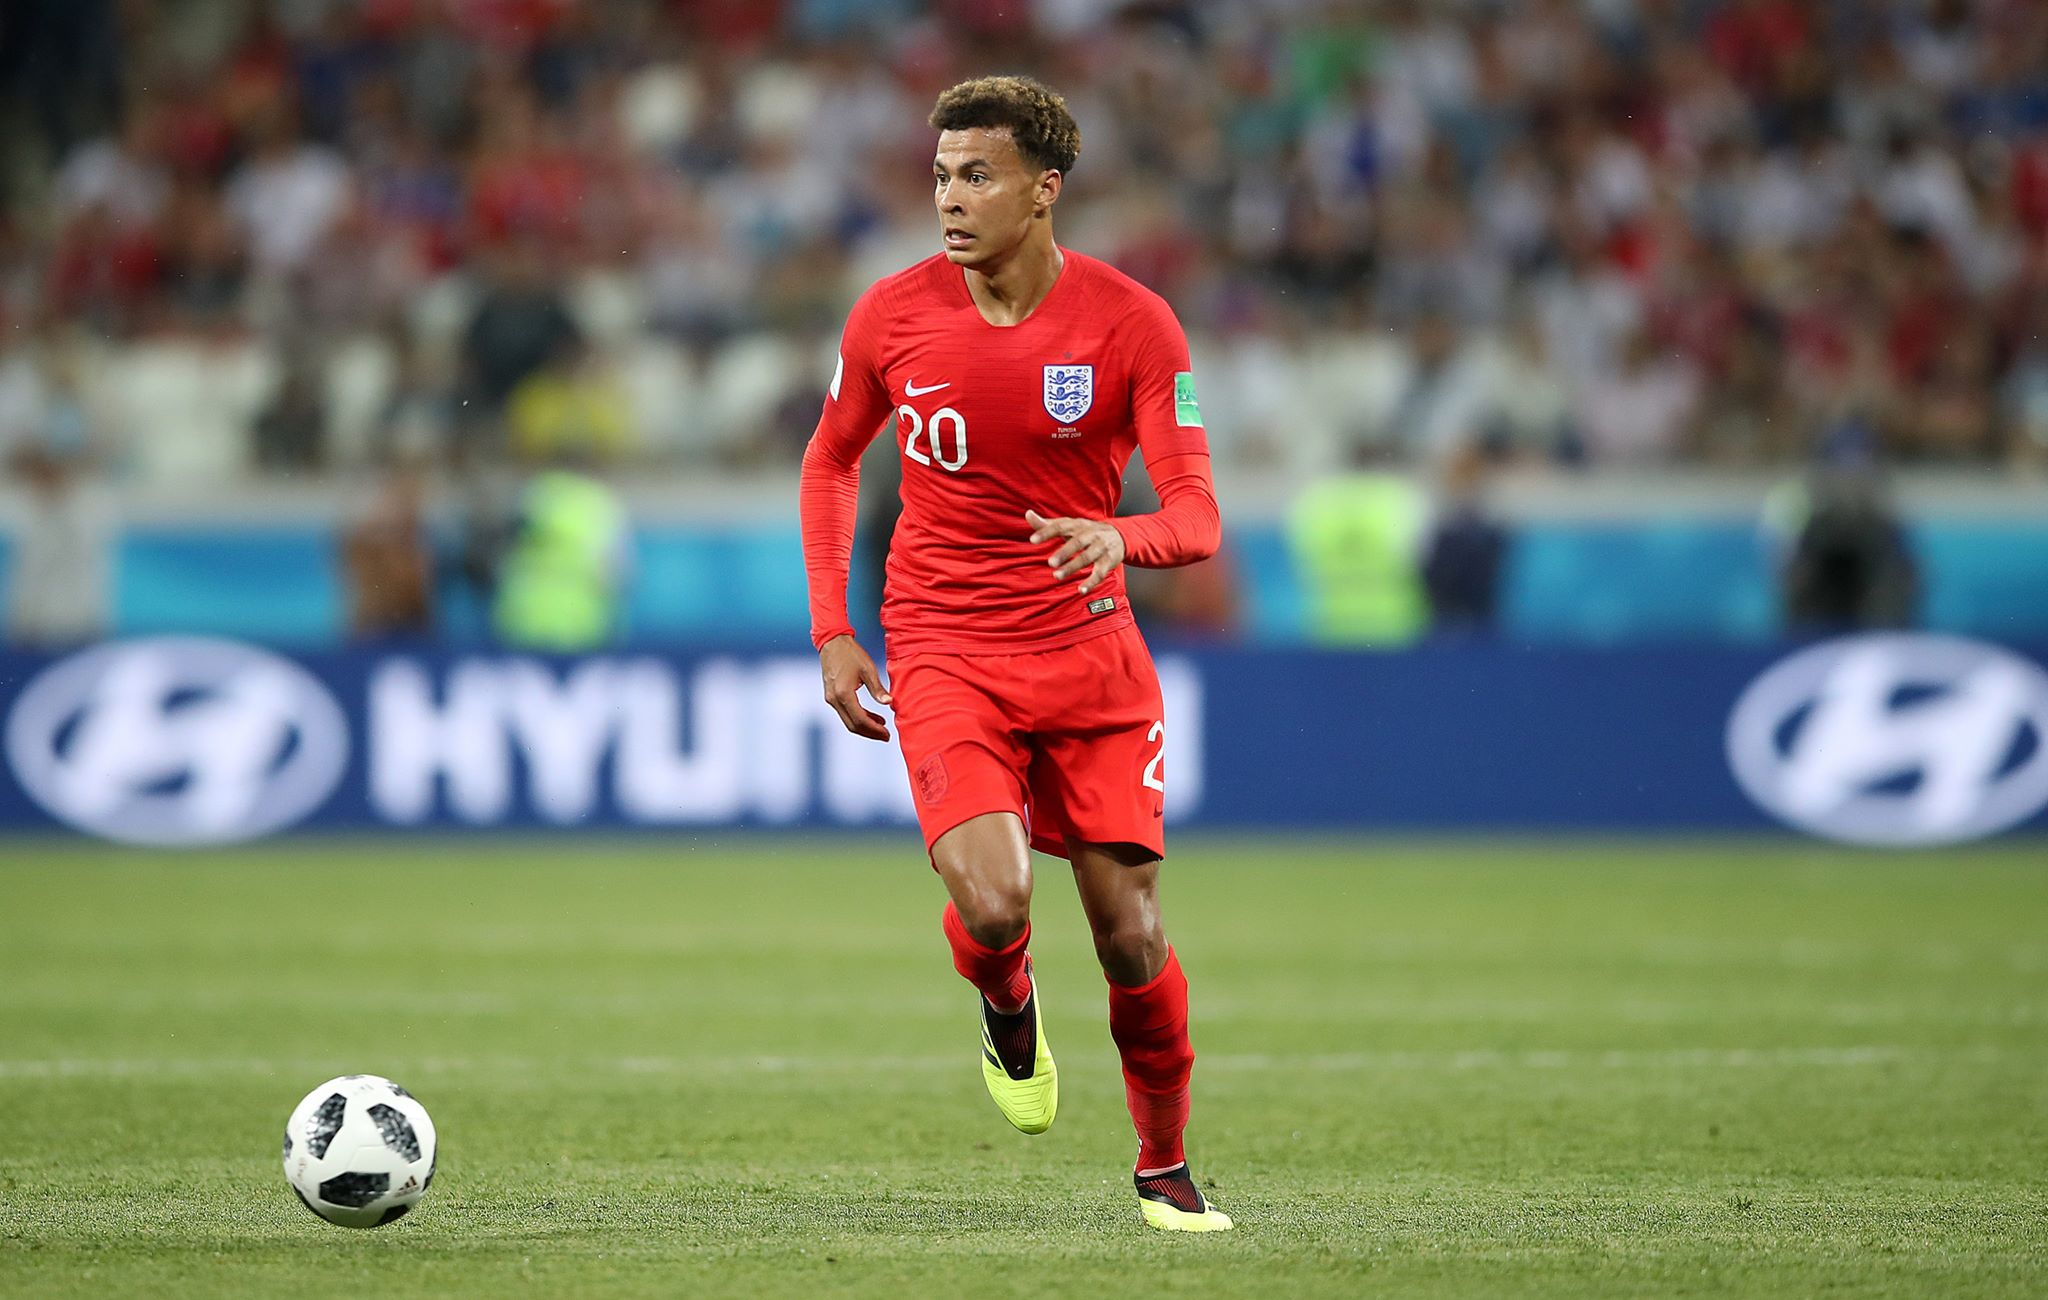 Alli in action for England at the World Cup. Image: PA